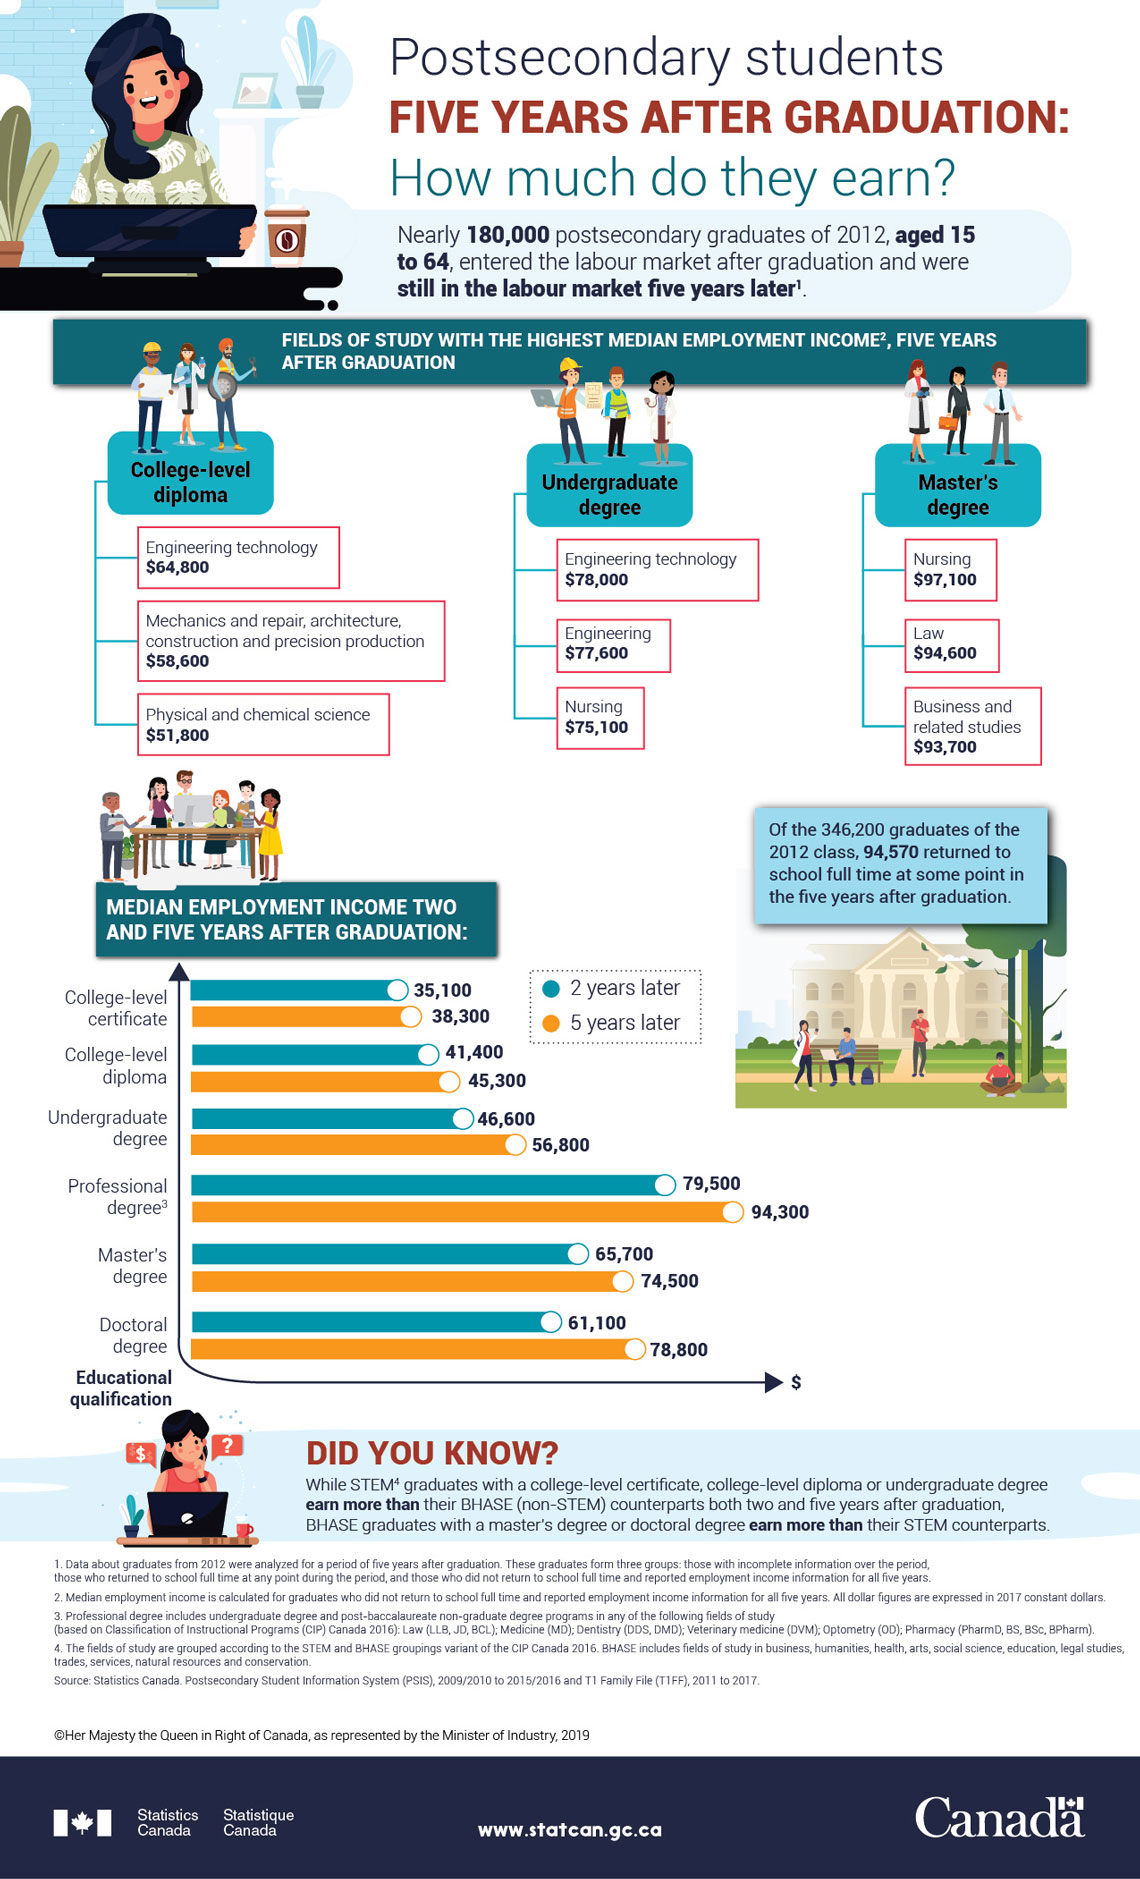 Infographic: Postsecondary students five years after graduation: How much do they earn?